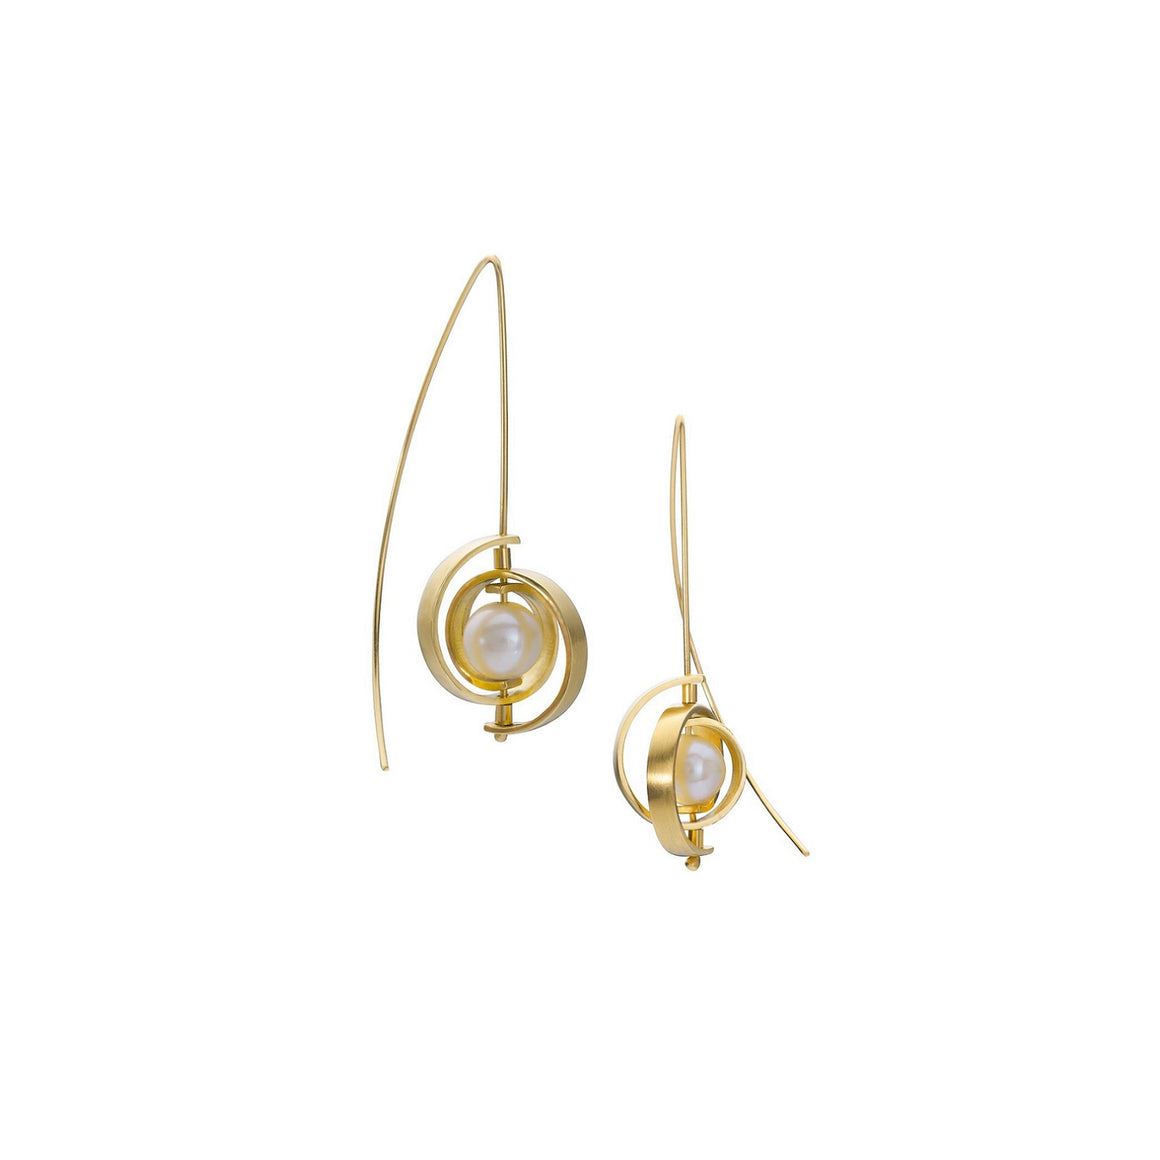 Medium Gold Spiral Earrings by Martha Seely